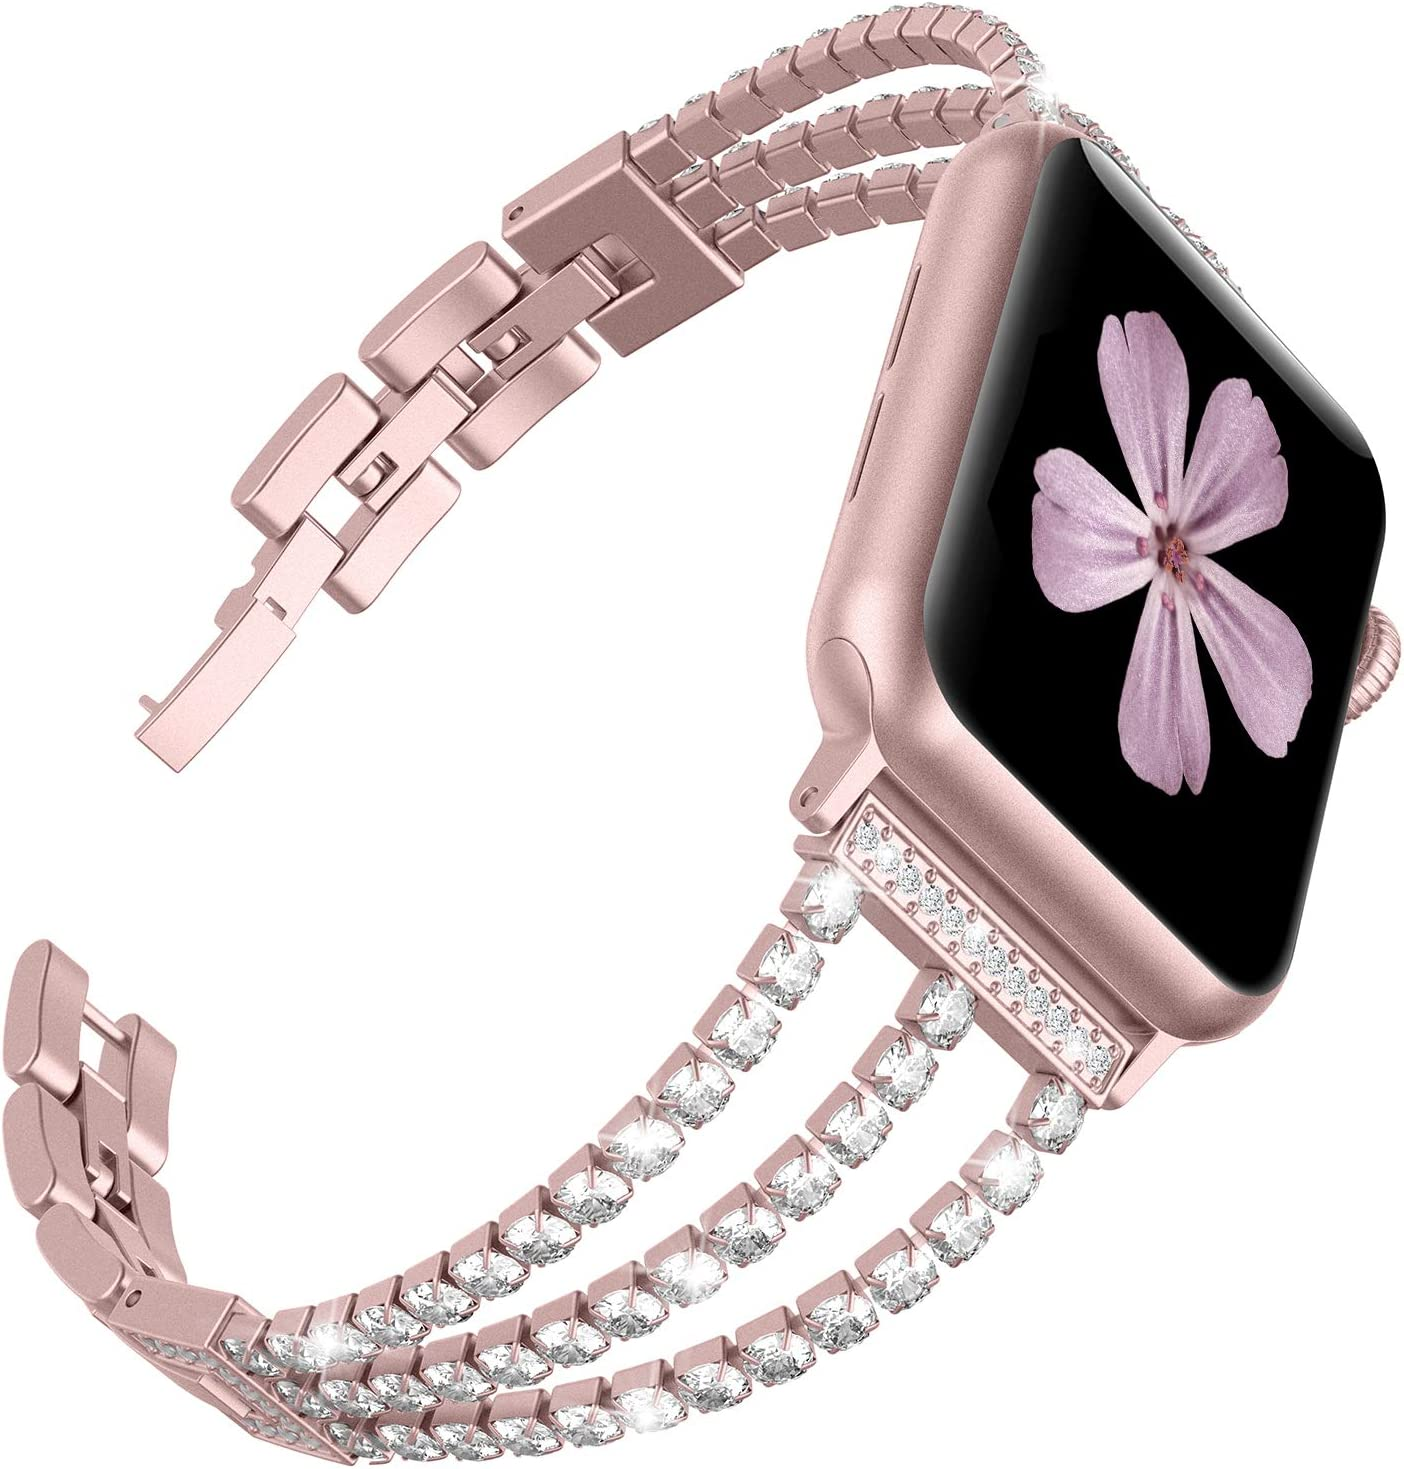 TOYOUTHS Compatible with Apple Watch 5 Band Rose Gold Dressy Bling Jewelry Stainless Steel Wristband Bracelet Sparkle Strap iWatch bands 40mm womens Series 4 3 2 1 38 mm 40mm(Rose Gold, 38mm/40mm)